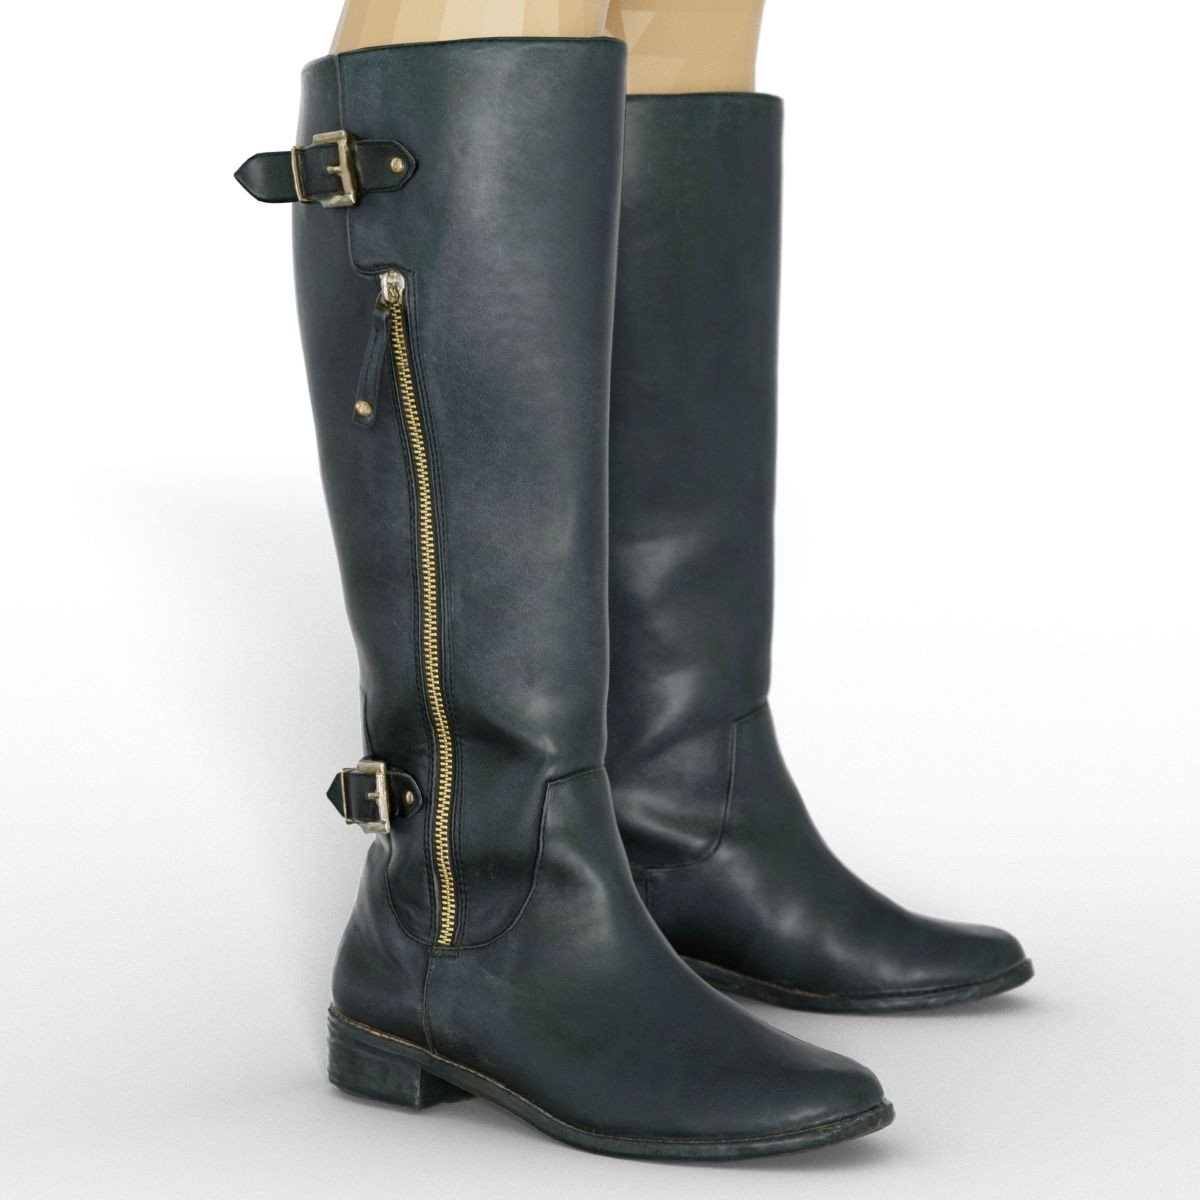 Black Leather Boots for Genesis 8